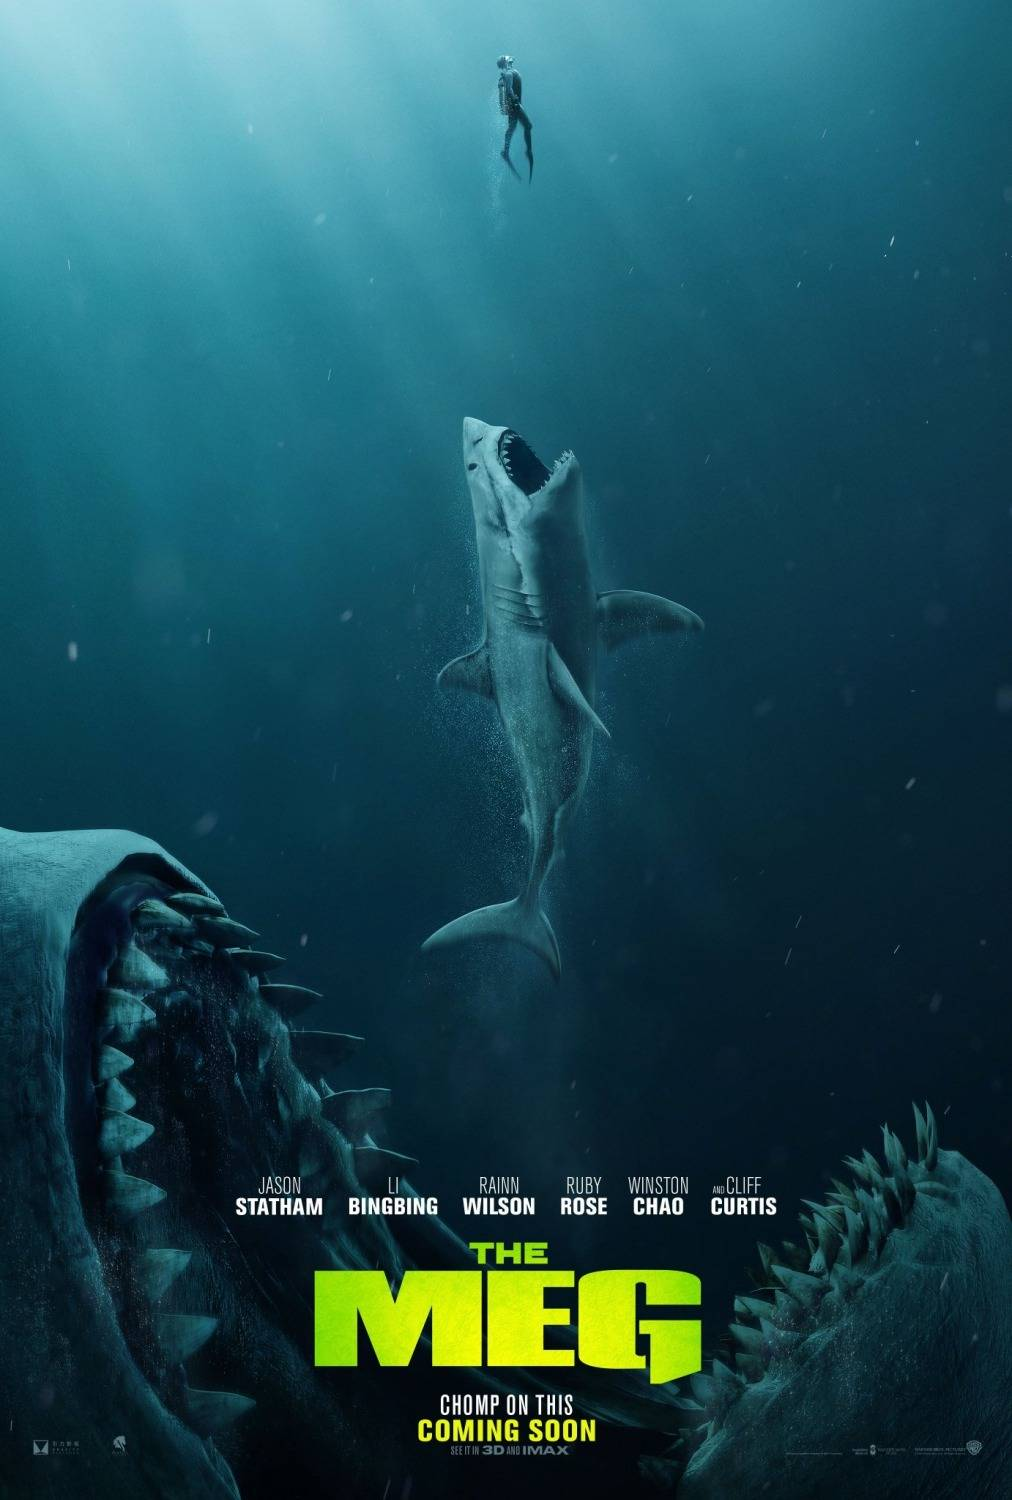 jason-statham-almost-gets-eaten-by-a-giant-shark-in-new-trailer-and-poster-for-the-meg1